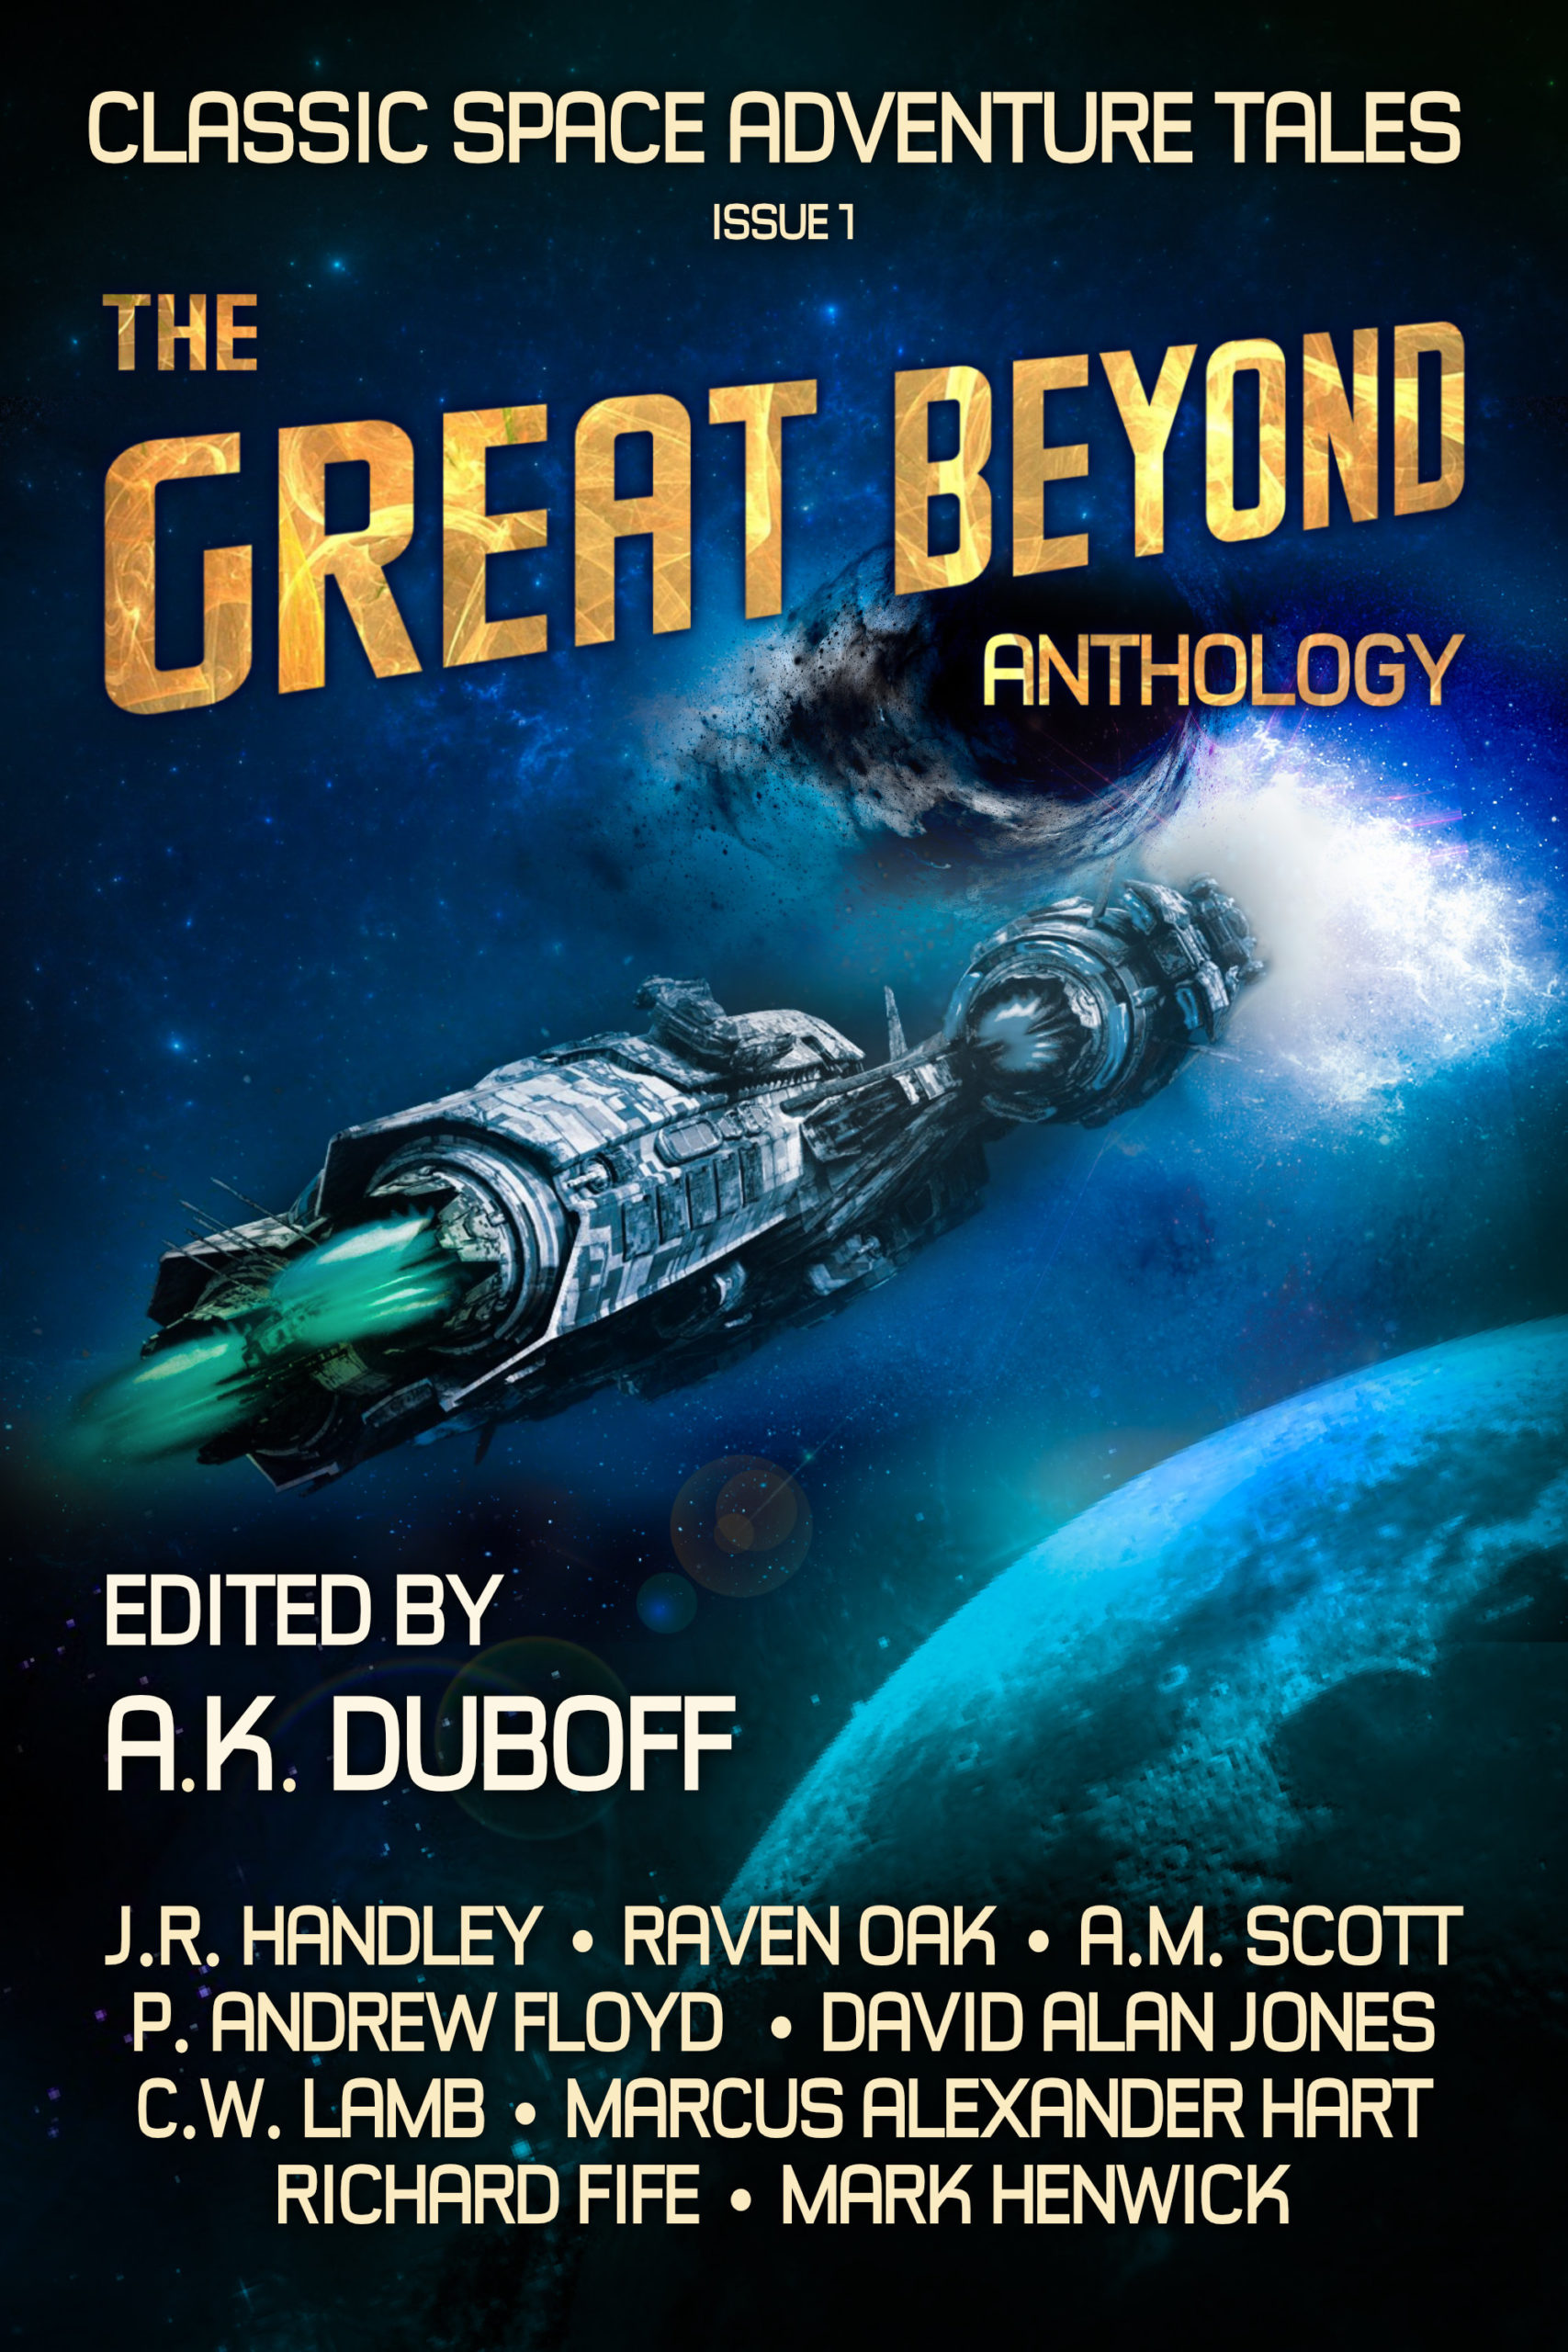 The Great Beyond Anthology